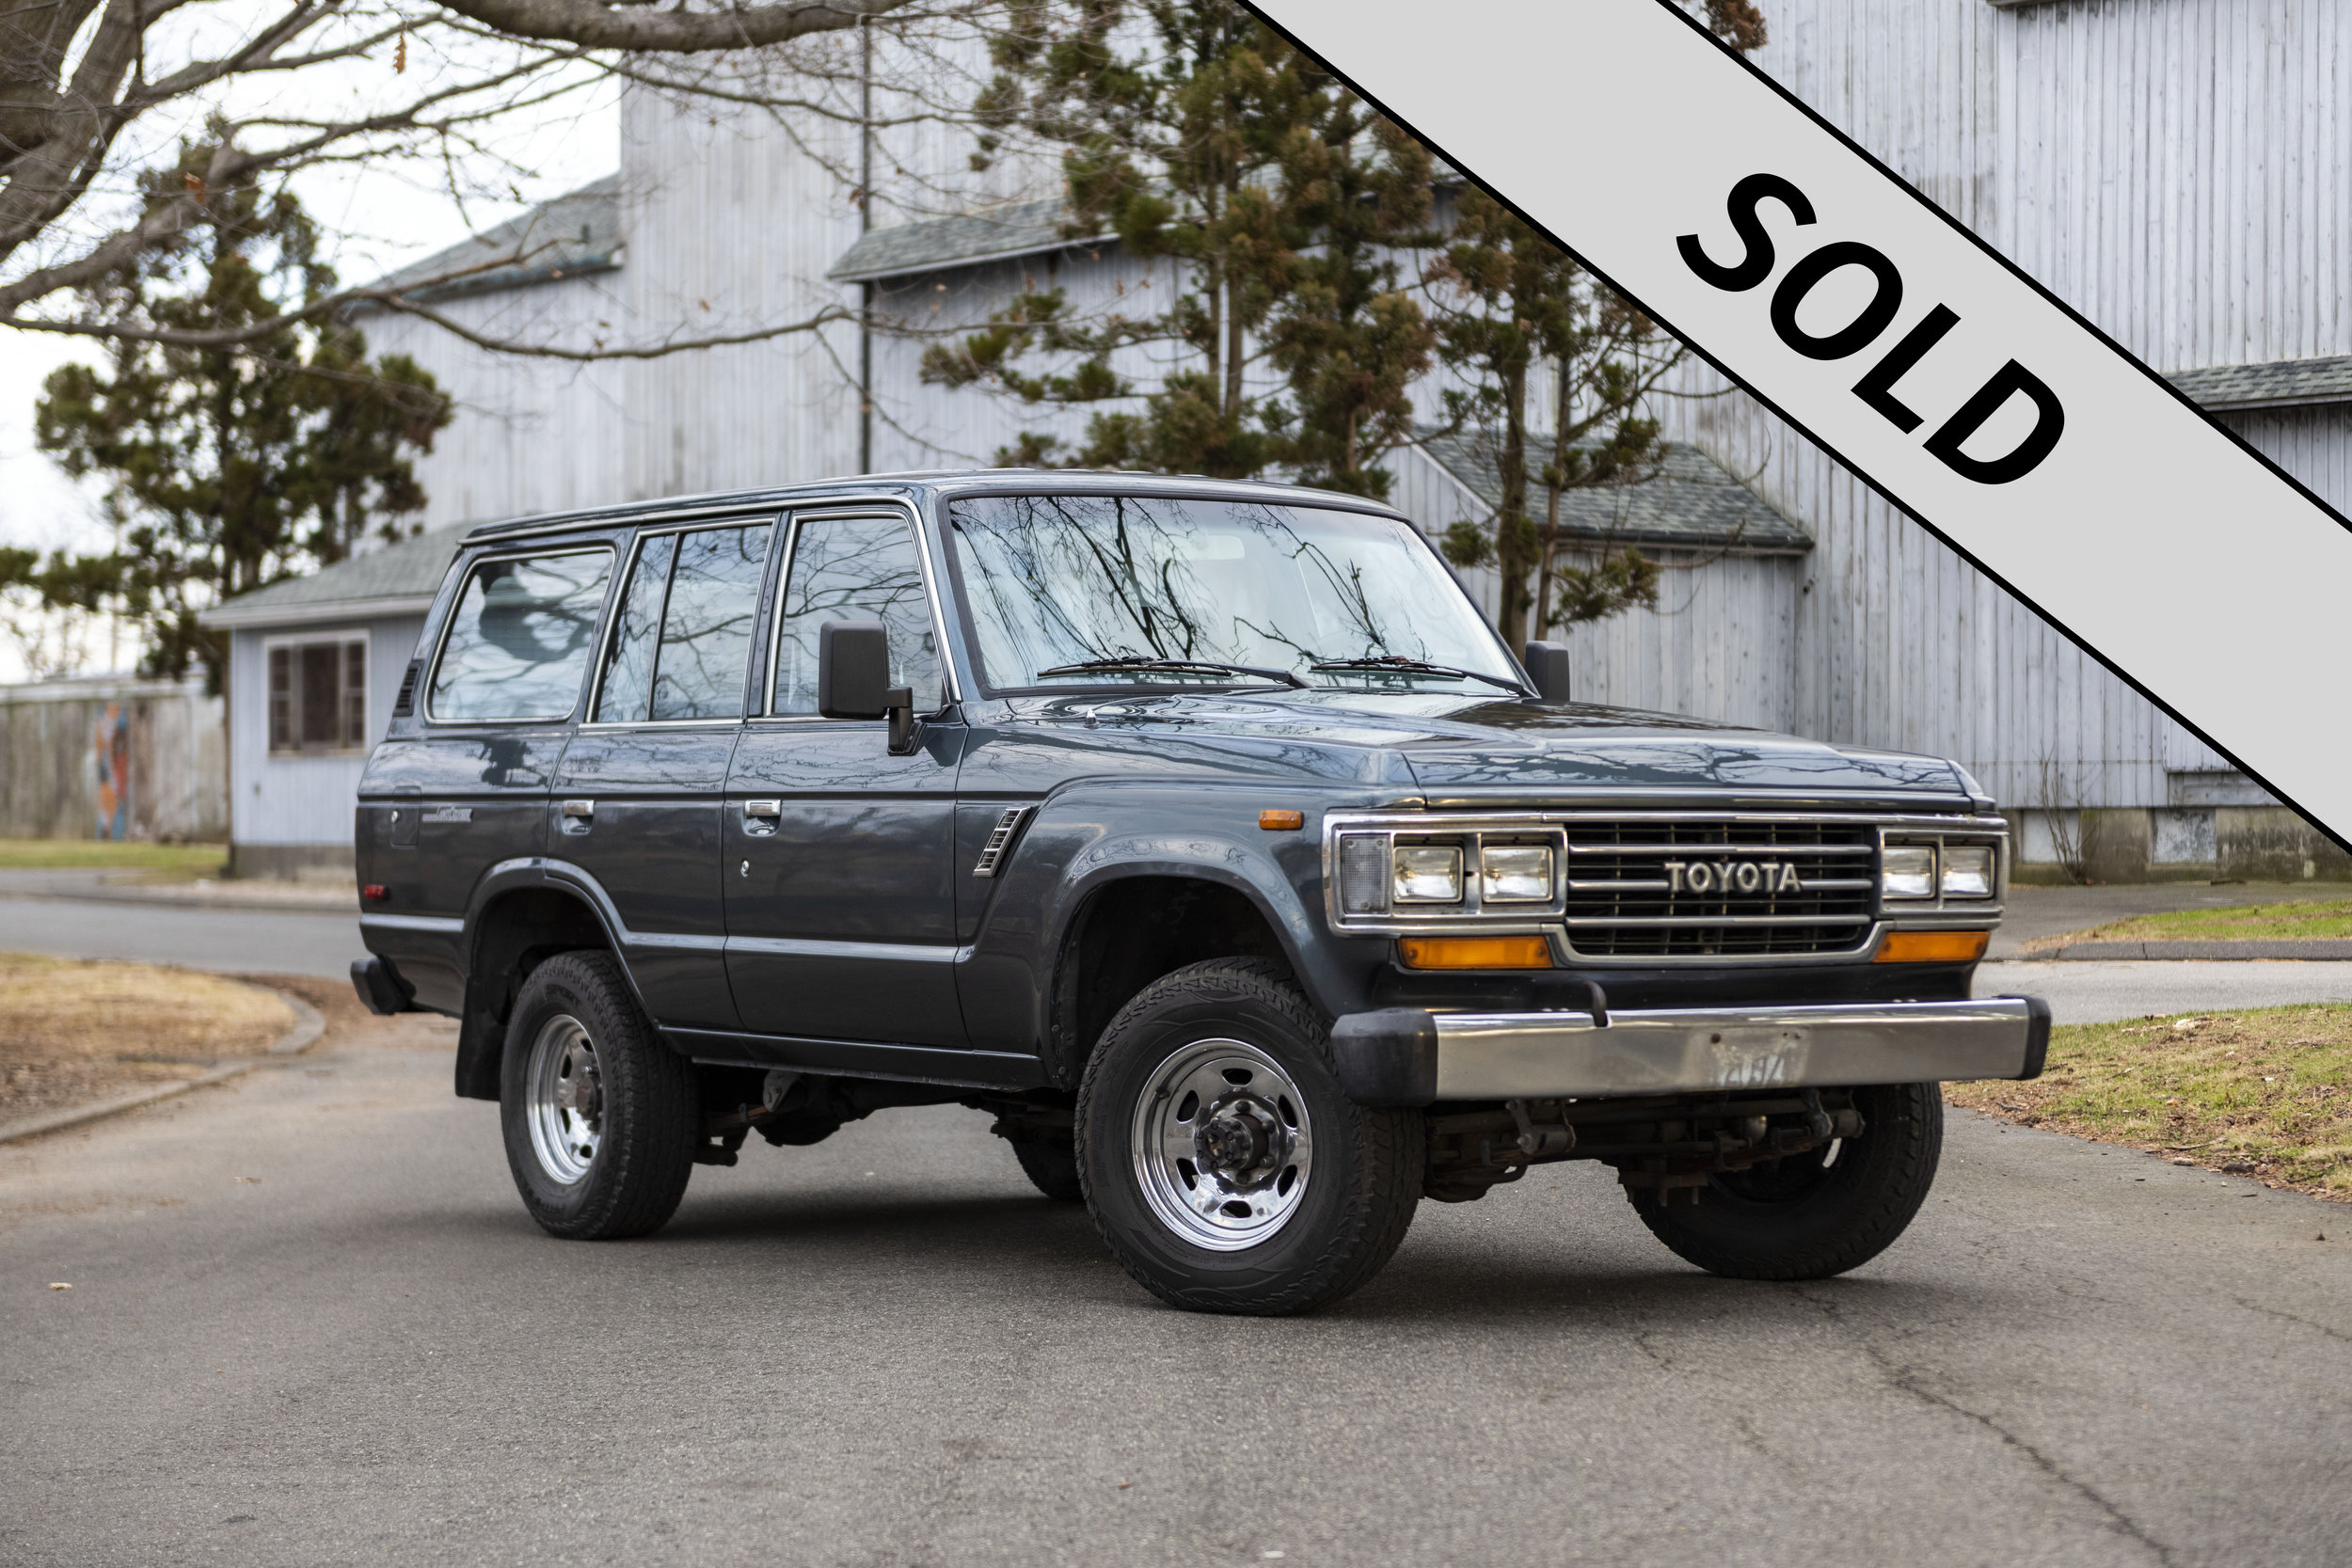 1989 Toyota Land Cruiser FJ62 SOLD.jpg